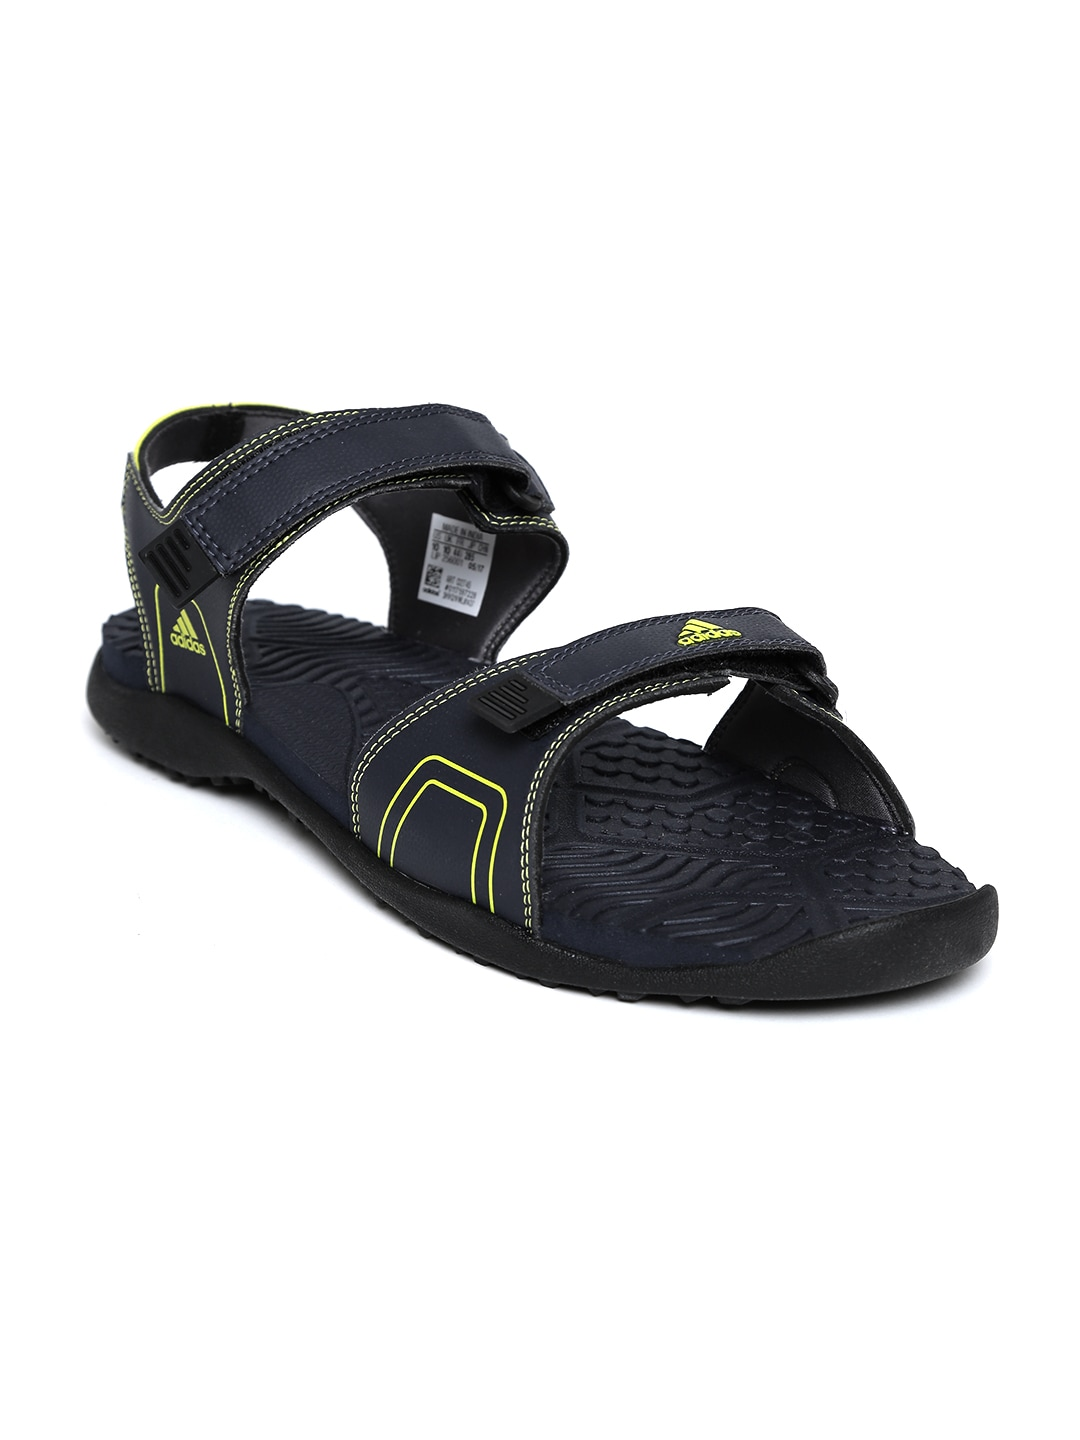 6a463a051 Cheap reebok sandals price list Buy Online  OFF32% Discounted